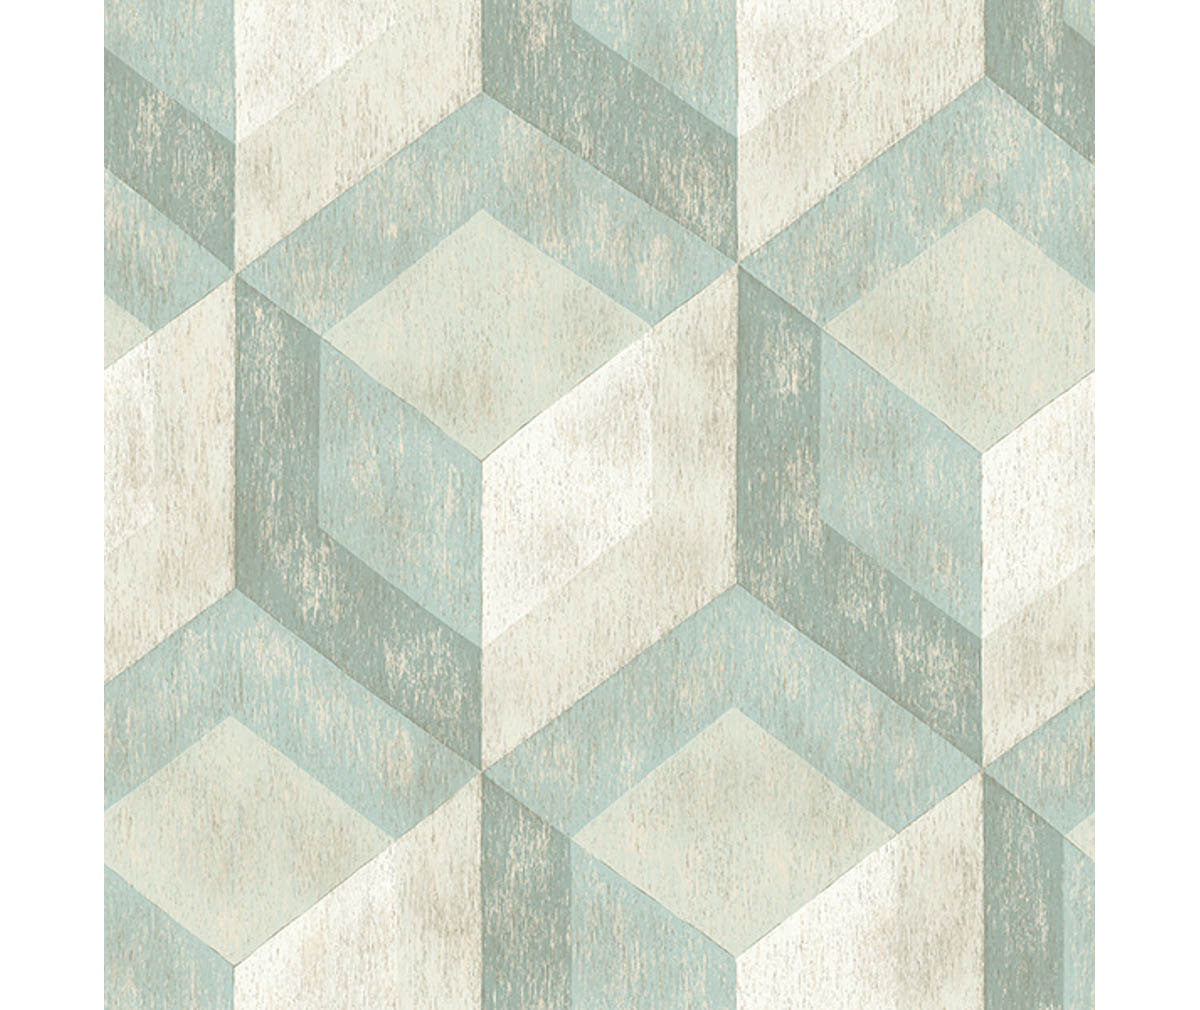 Rustic Wood Tile Green Geometric Wallpaper available at Barrydowne Paint